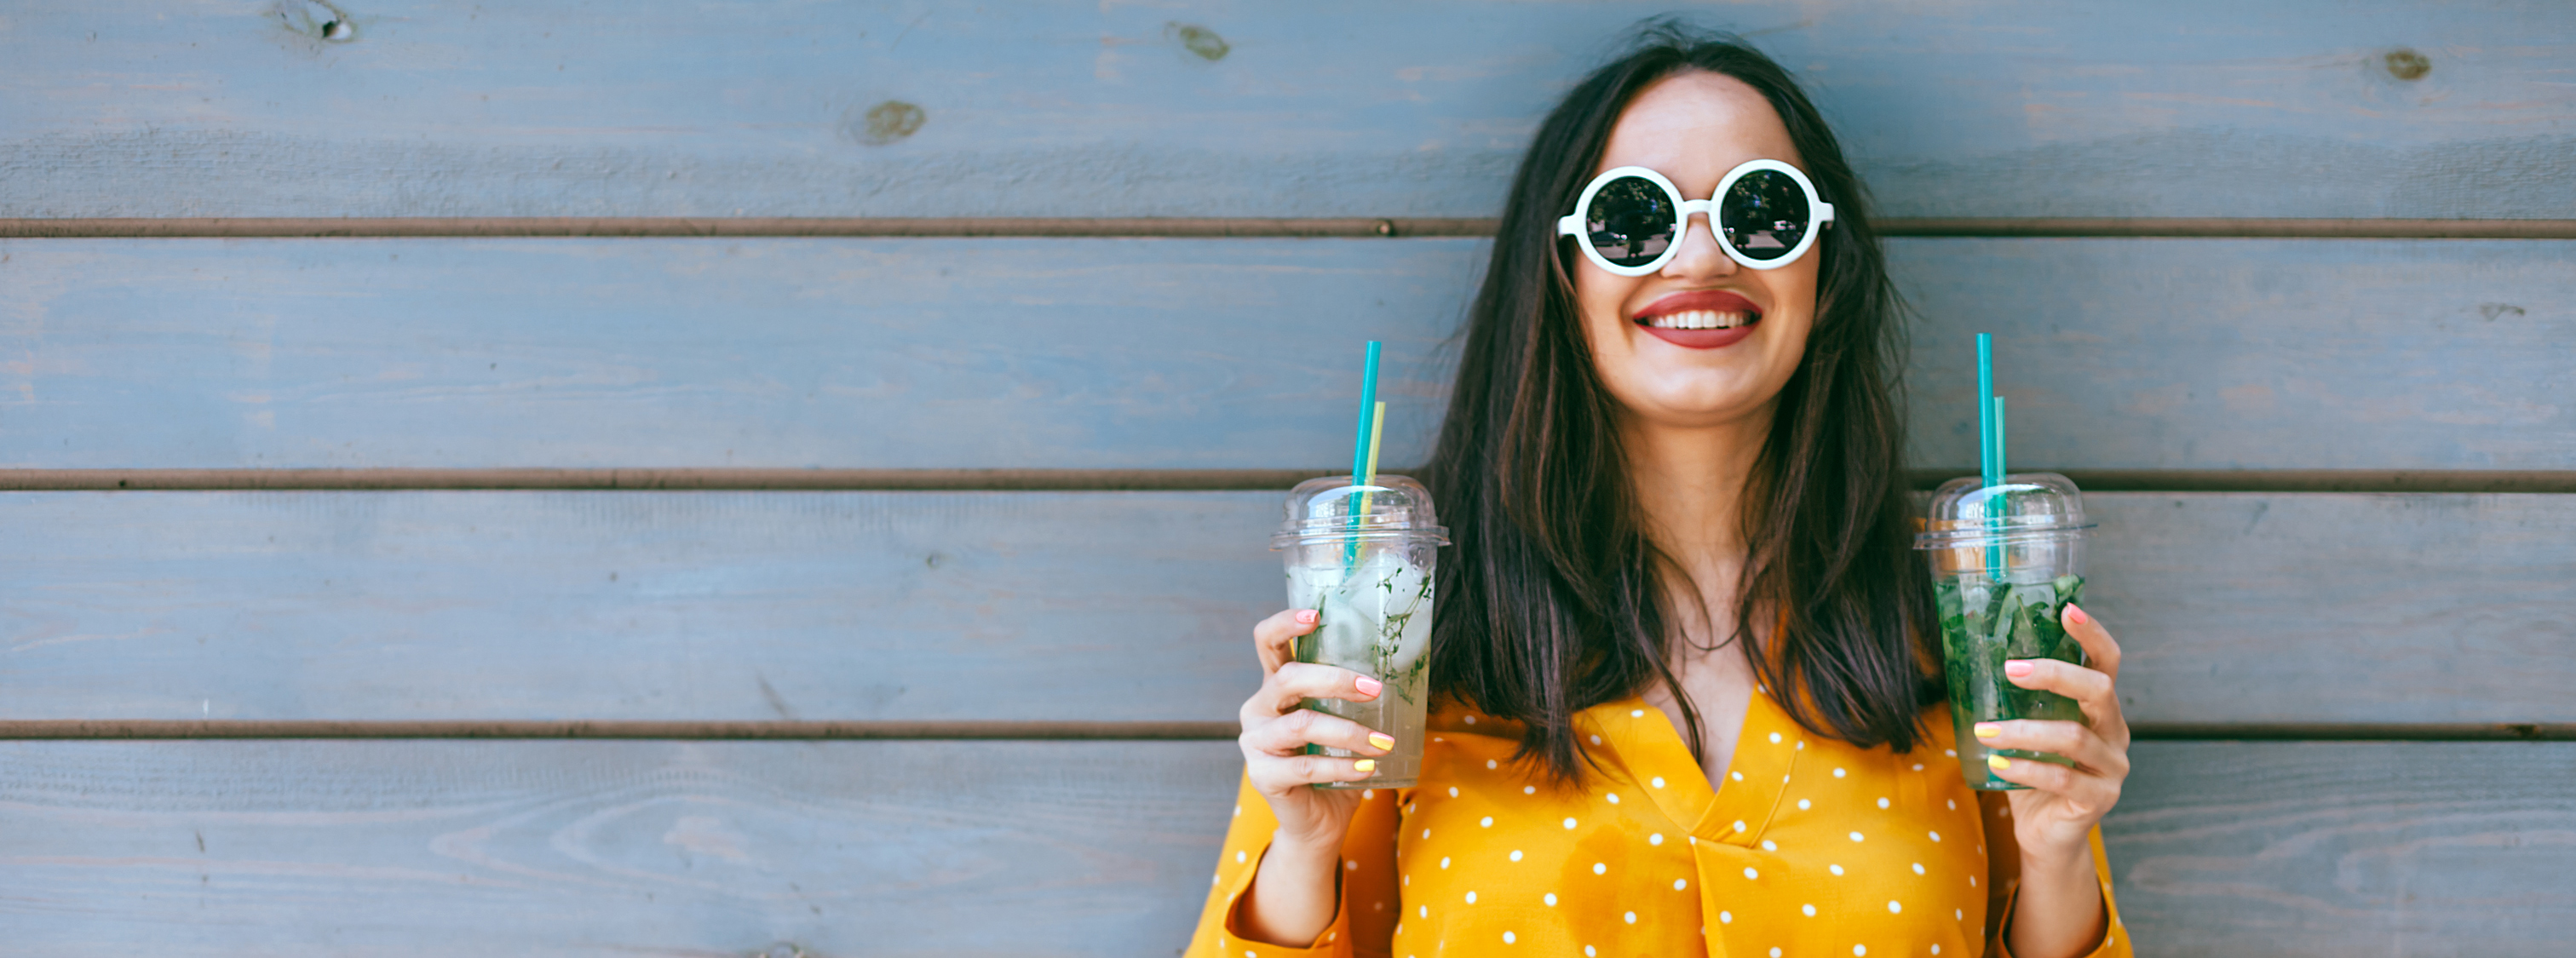 Smiling woman wearing sunglasses and holding two takeaway cups with two different drinks